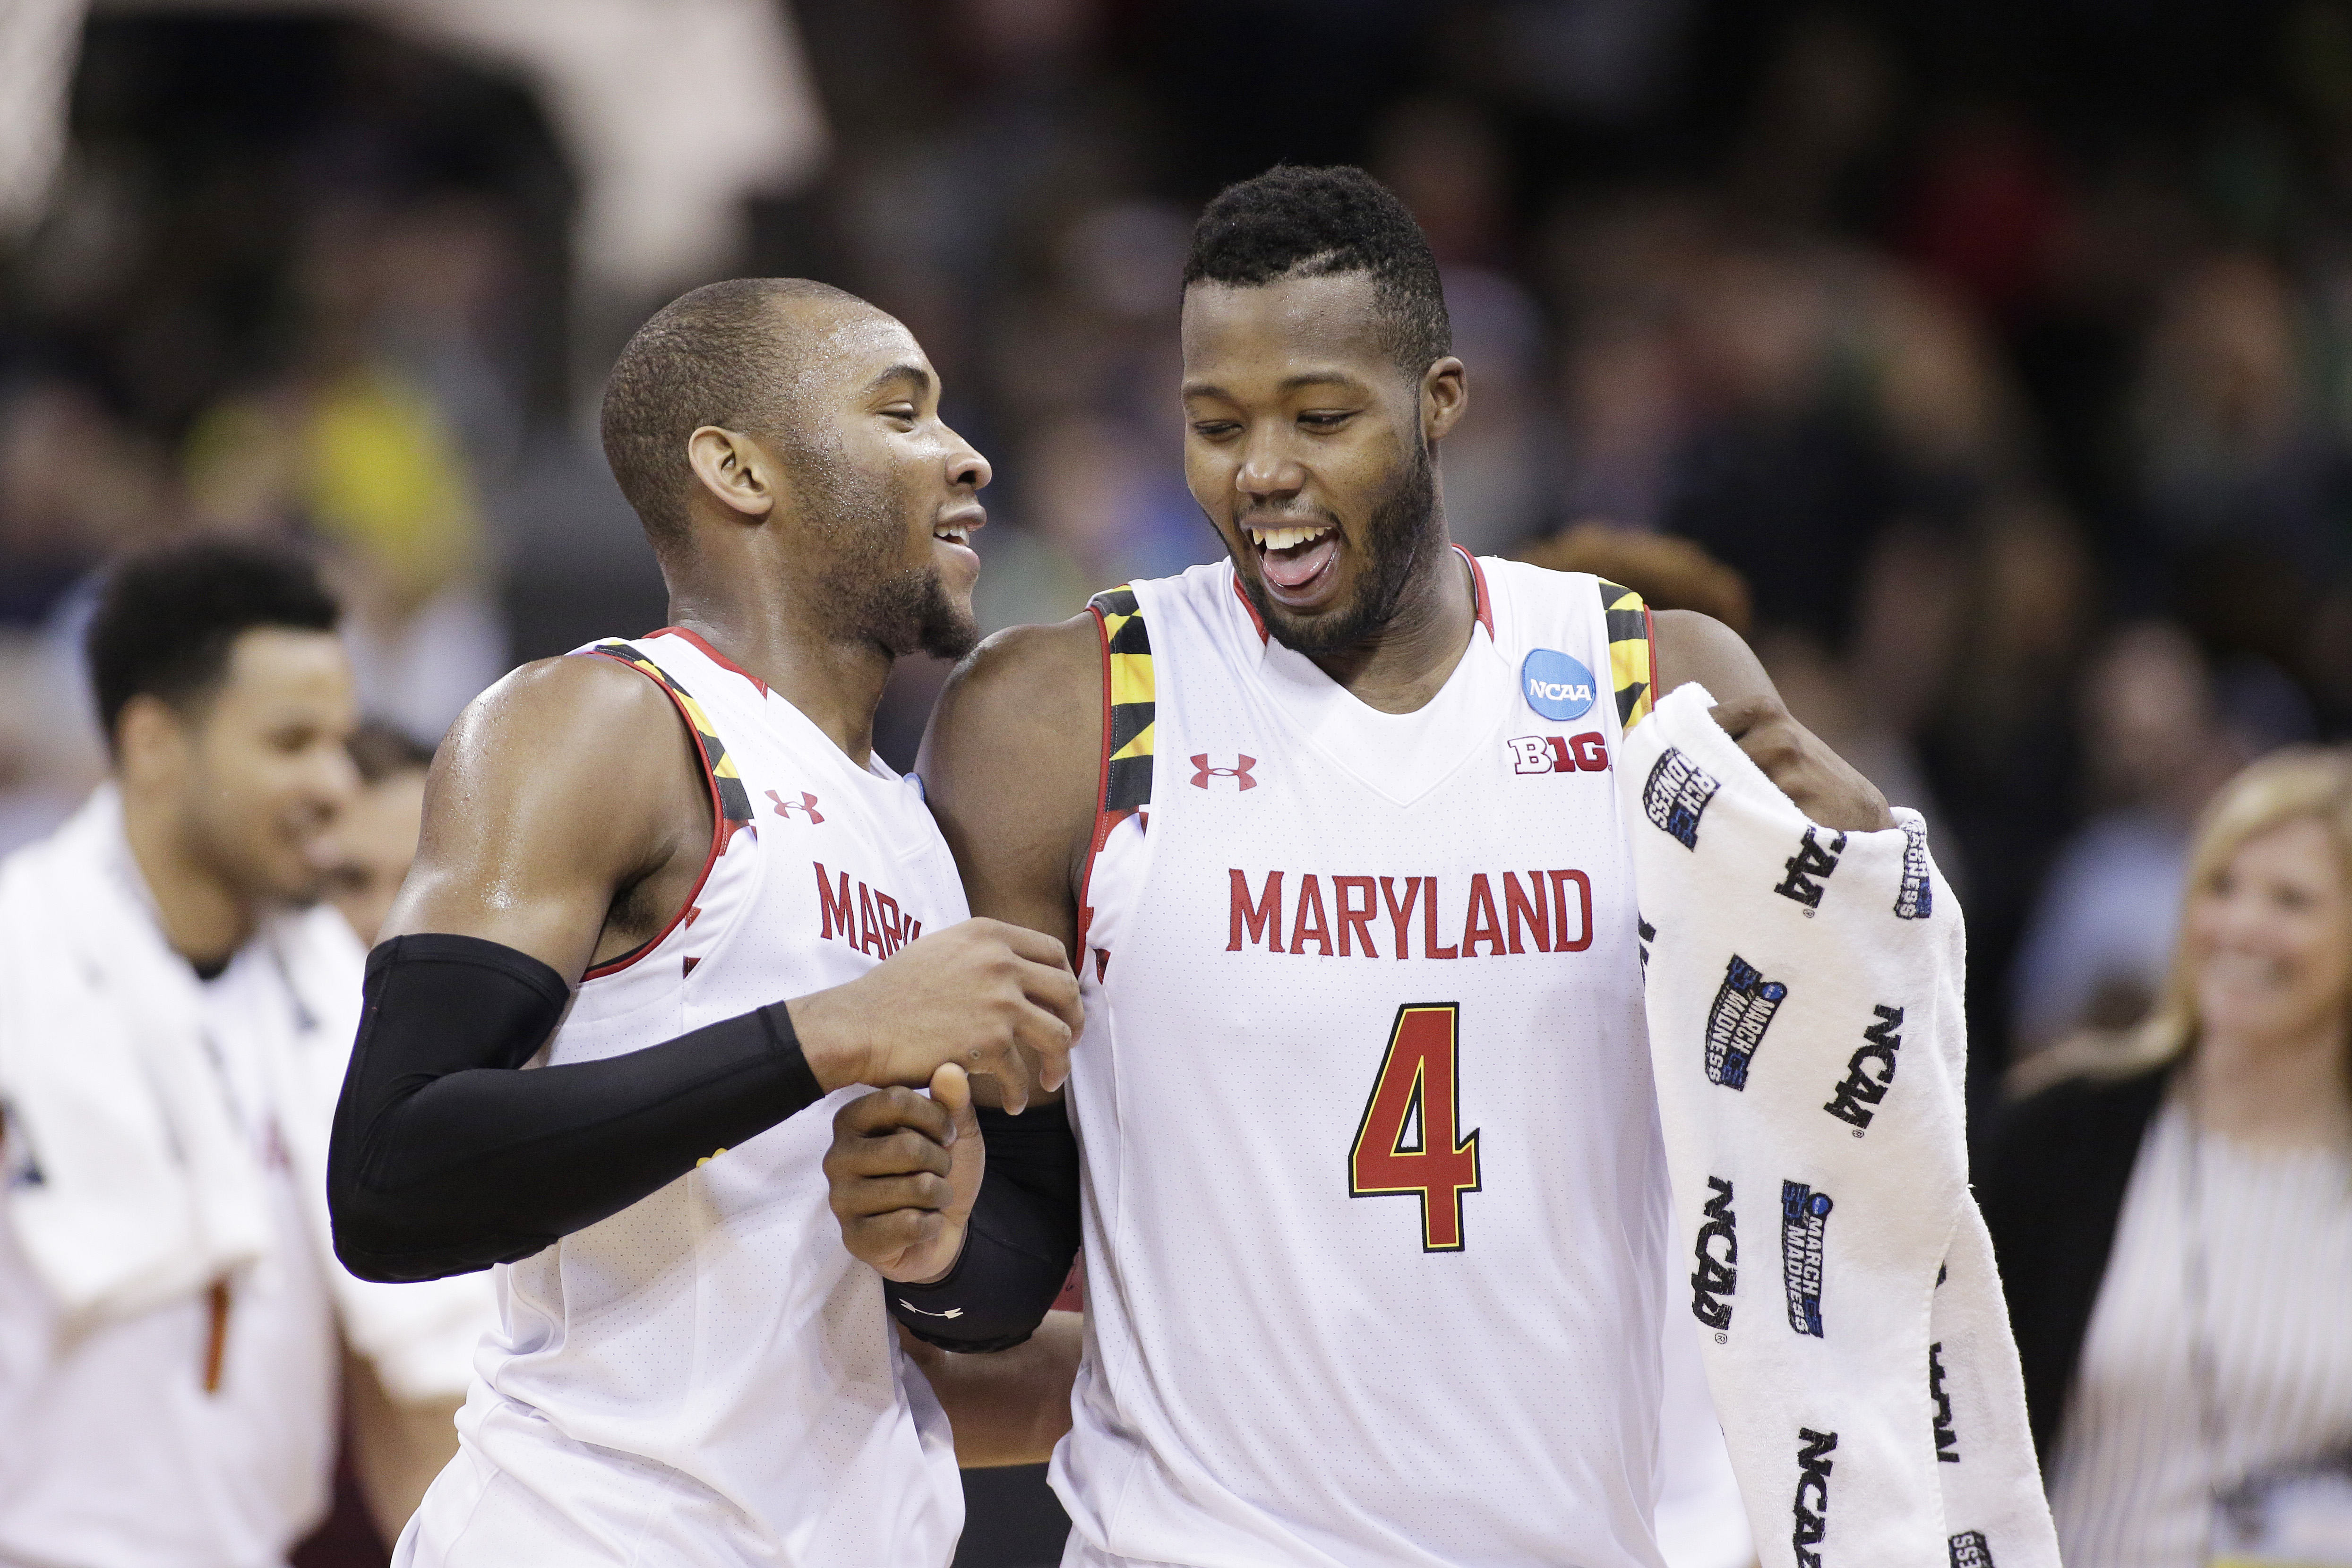 Maryland forward Robert Carter (4) and guard Rasheed Sulaimon celebrate after winning a second-round men's college basketball game against Hawaii in the NCAA Tournament in Spokane, Wash., Sunday, March 20, 2016. Maryland won 73-60. (AP Photo/Young Kwak)